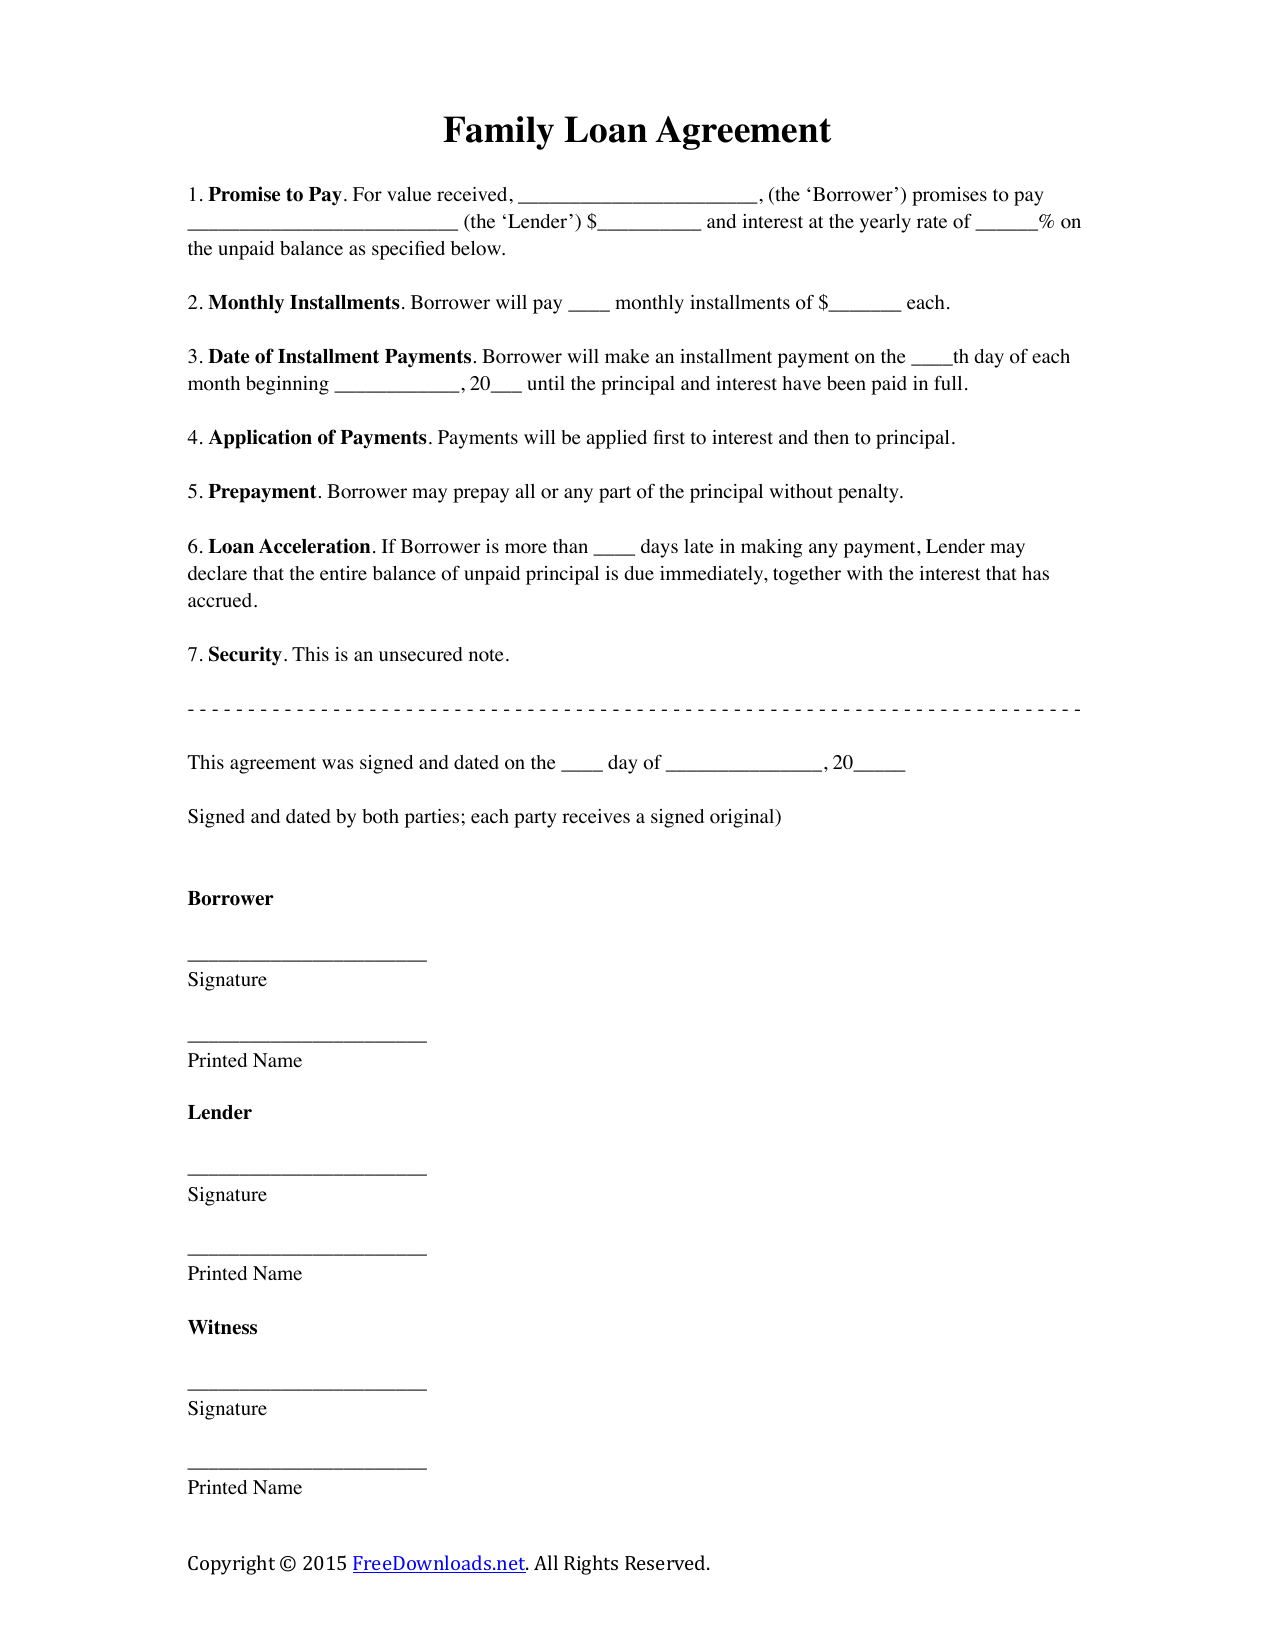 Download Family Loan Agreement Template Pdf Rtf Word